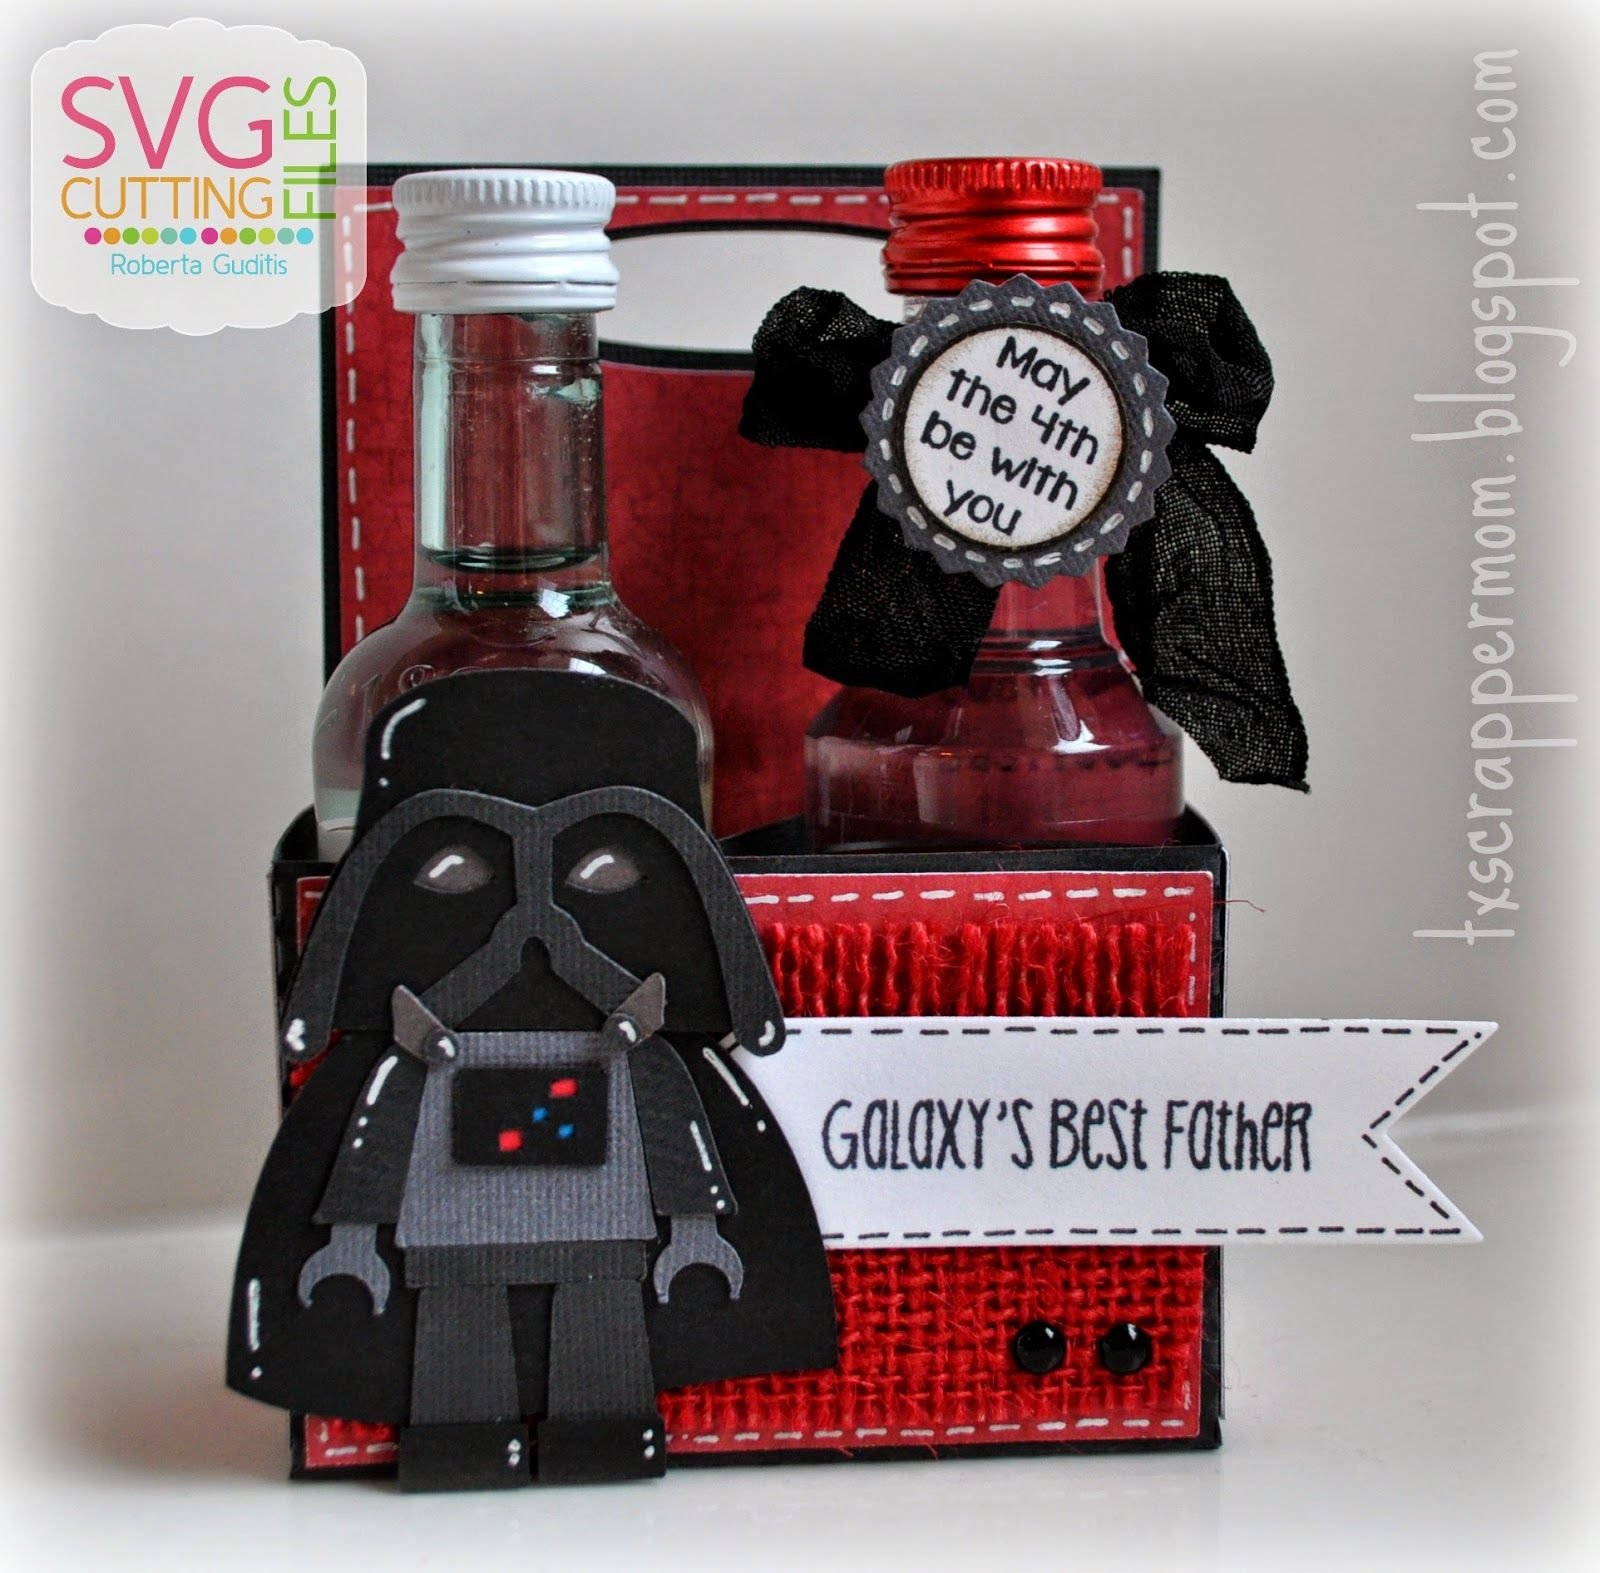 May The 4th Be With You Wedding: Tx Scrapper Mom: May The 4th Be With You Blog Hop